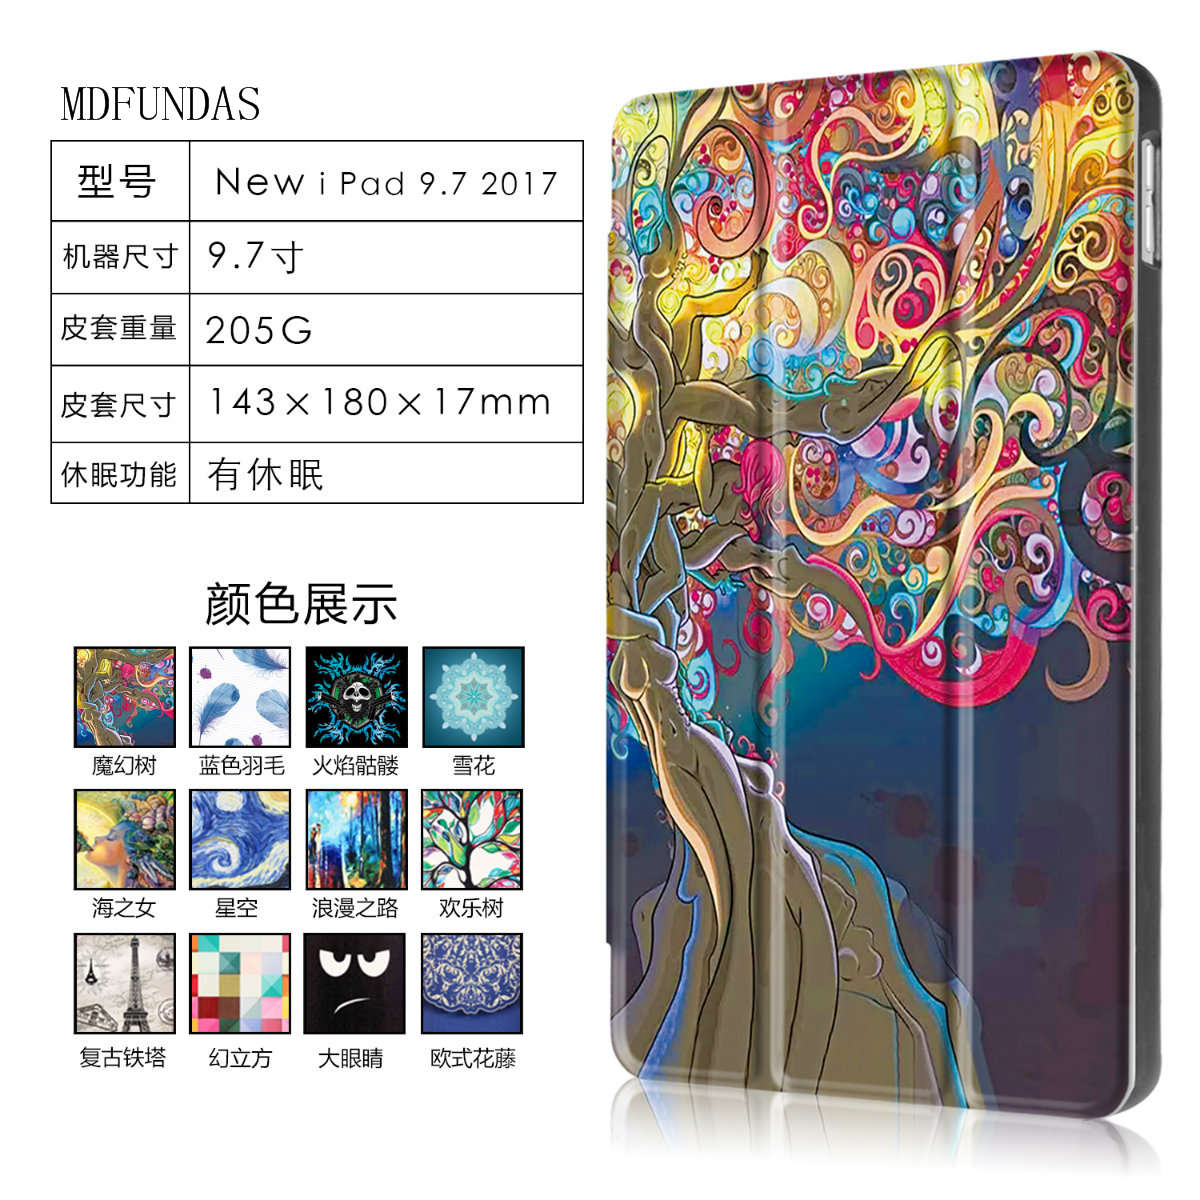 MDFUNDAS Various Style Pattern Tri-folding PU Leather Flip Stand Case Cover For Apple New iPad 2017 9.7